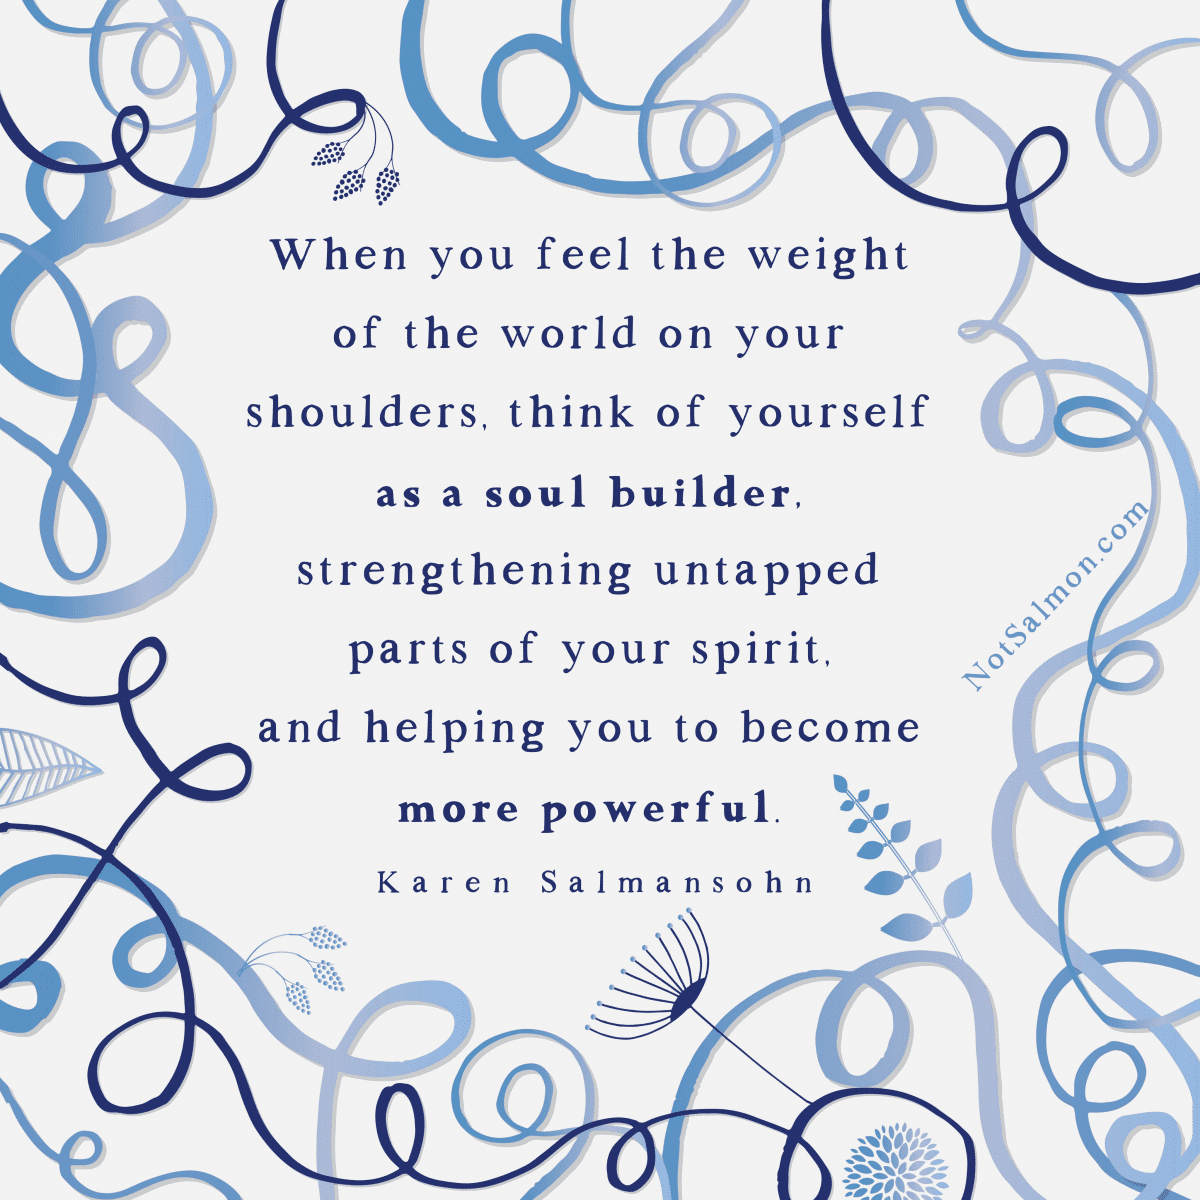 quote soul builder weight of world spiritual growth